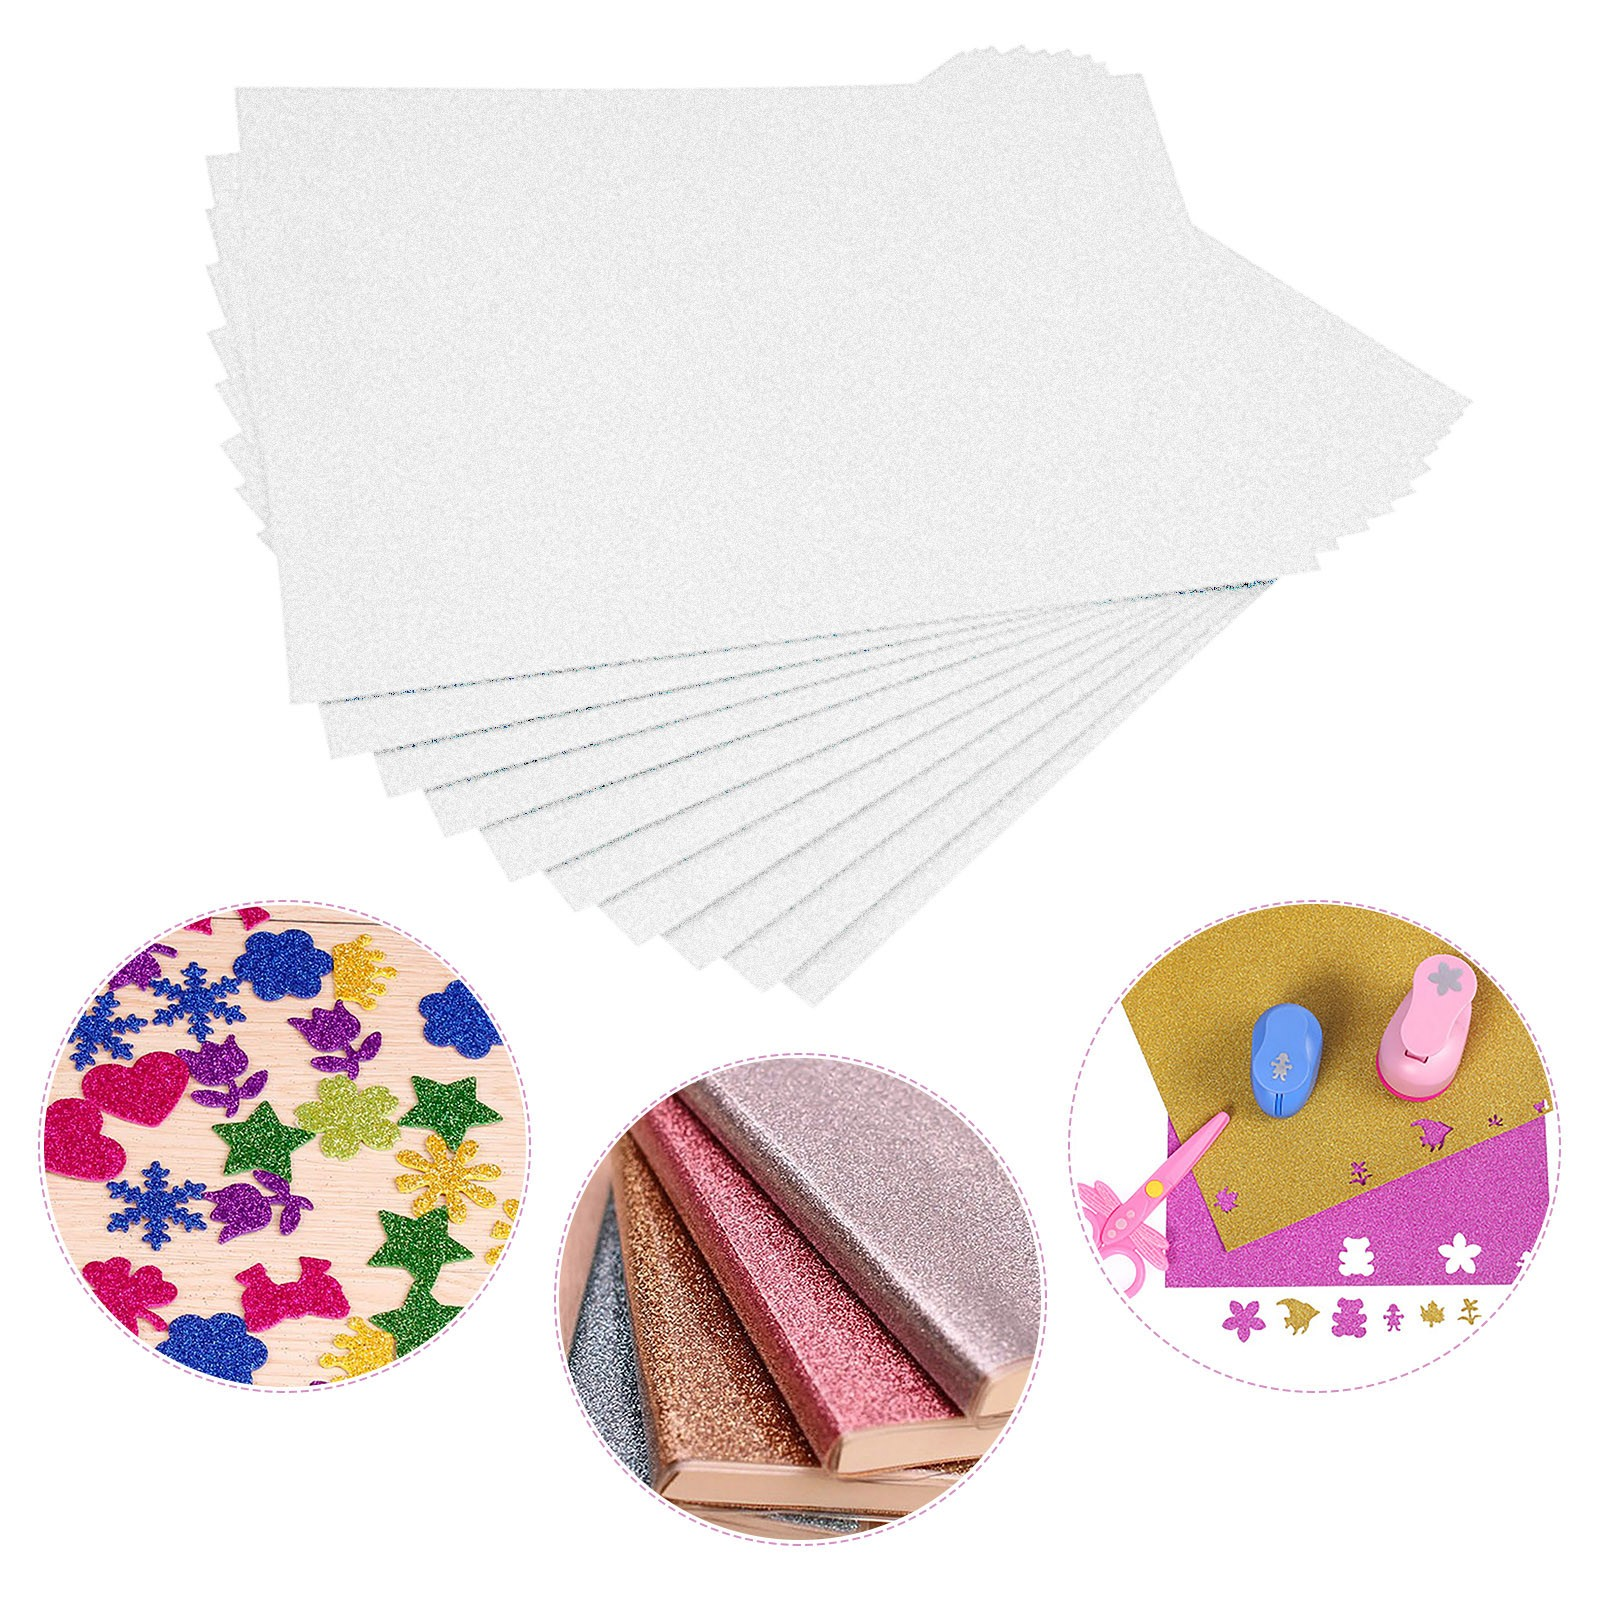 Flash Card Paper Flash Shiny Craft Paper Advanced A4 Flash Paper High-quality glitter card paper Shiny craft paper No Adhesive